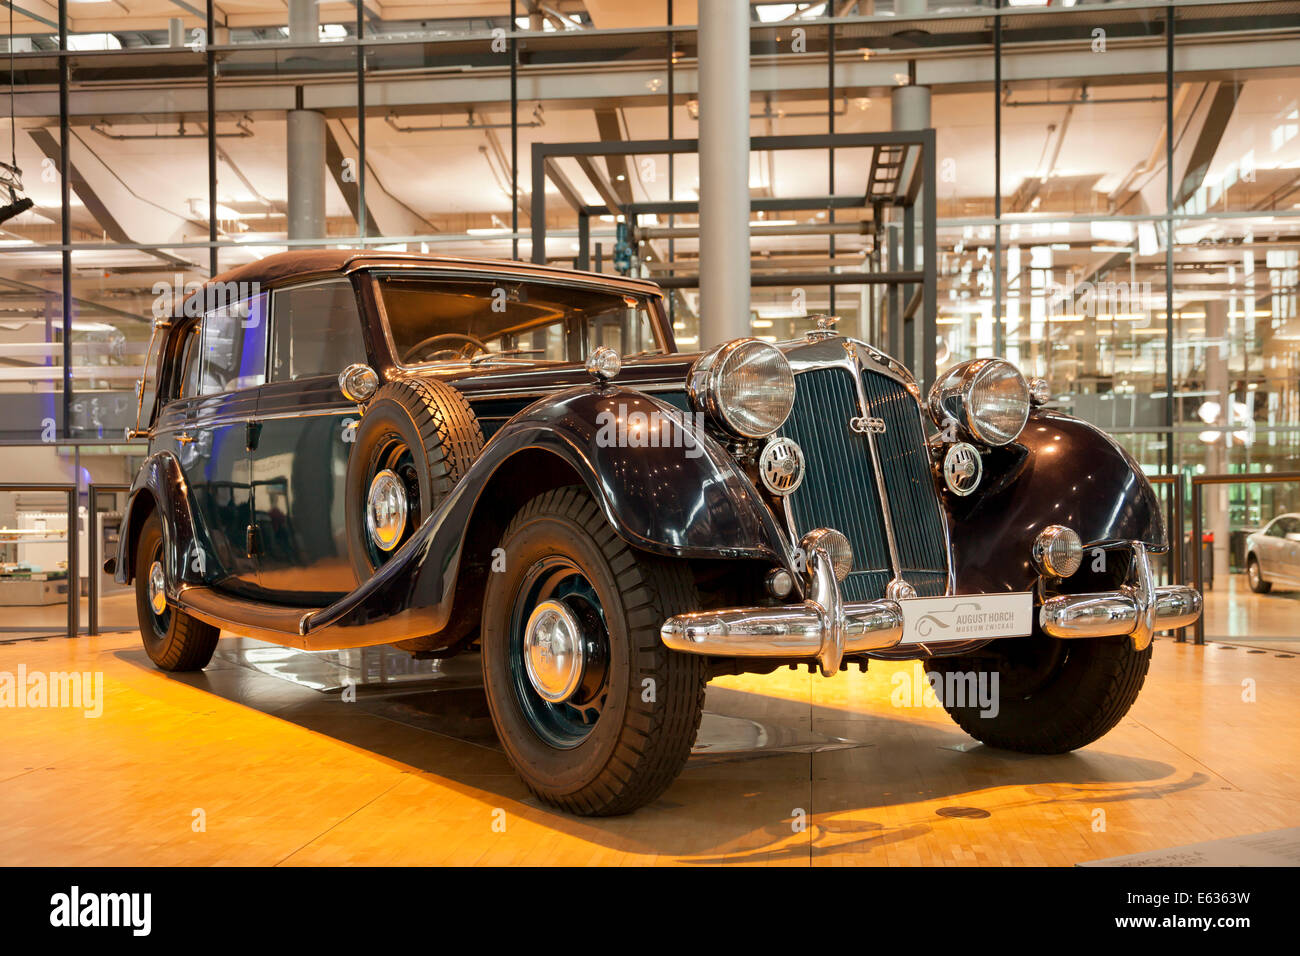 antique car horch 851 at the transparent factory of volkswagen in stock photo 72600077 alamy. Black Bedroom Furniture Sets. Home Design Ideas